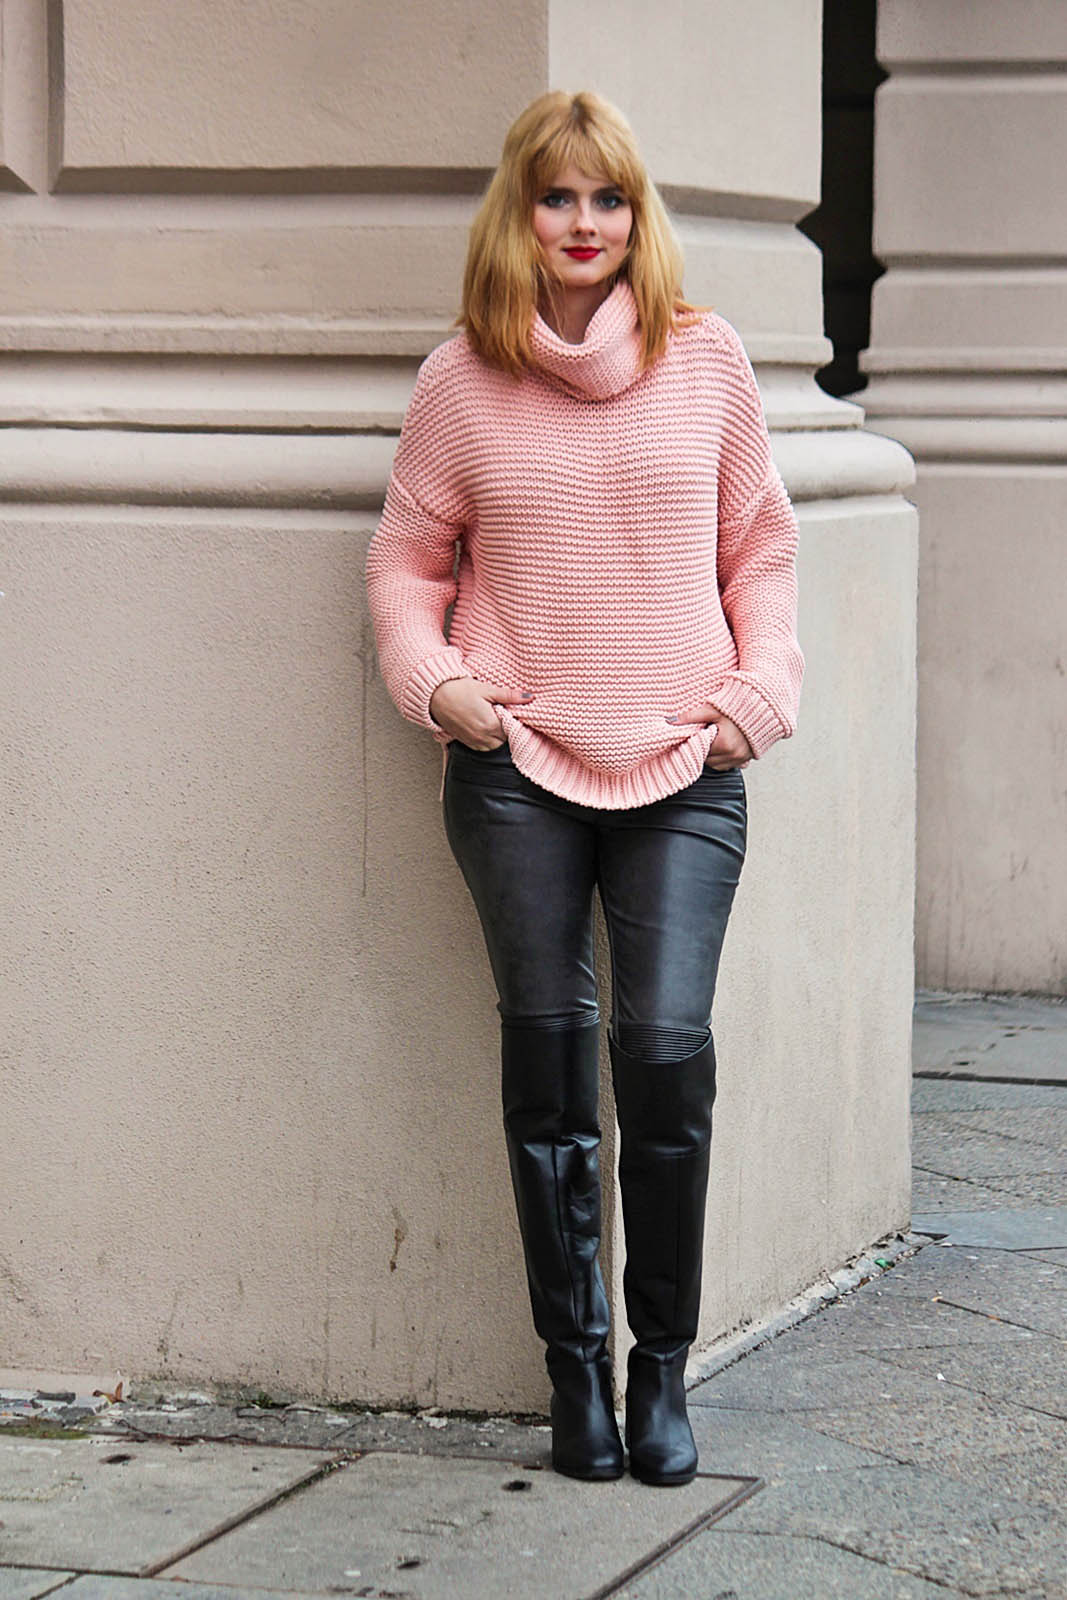 Berlin City Style - Turtleneck Sweater, Overknee Boots 2